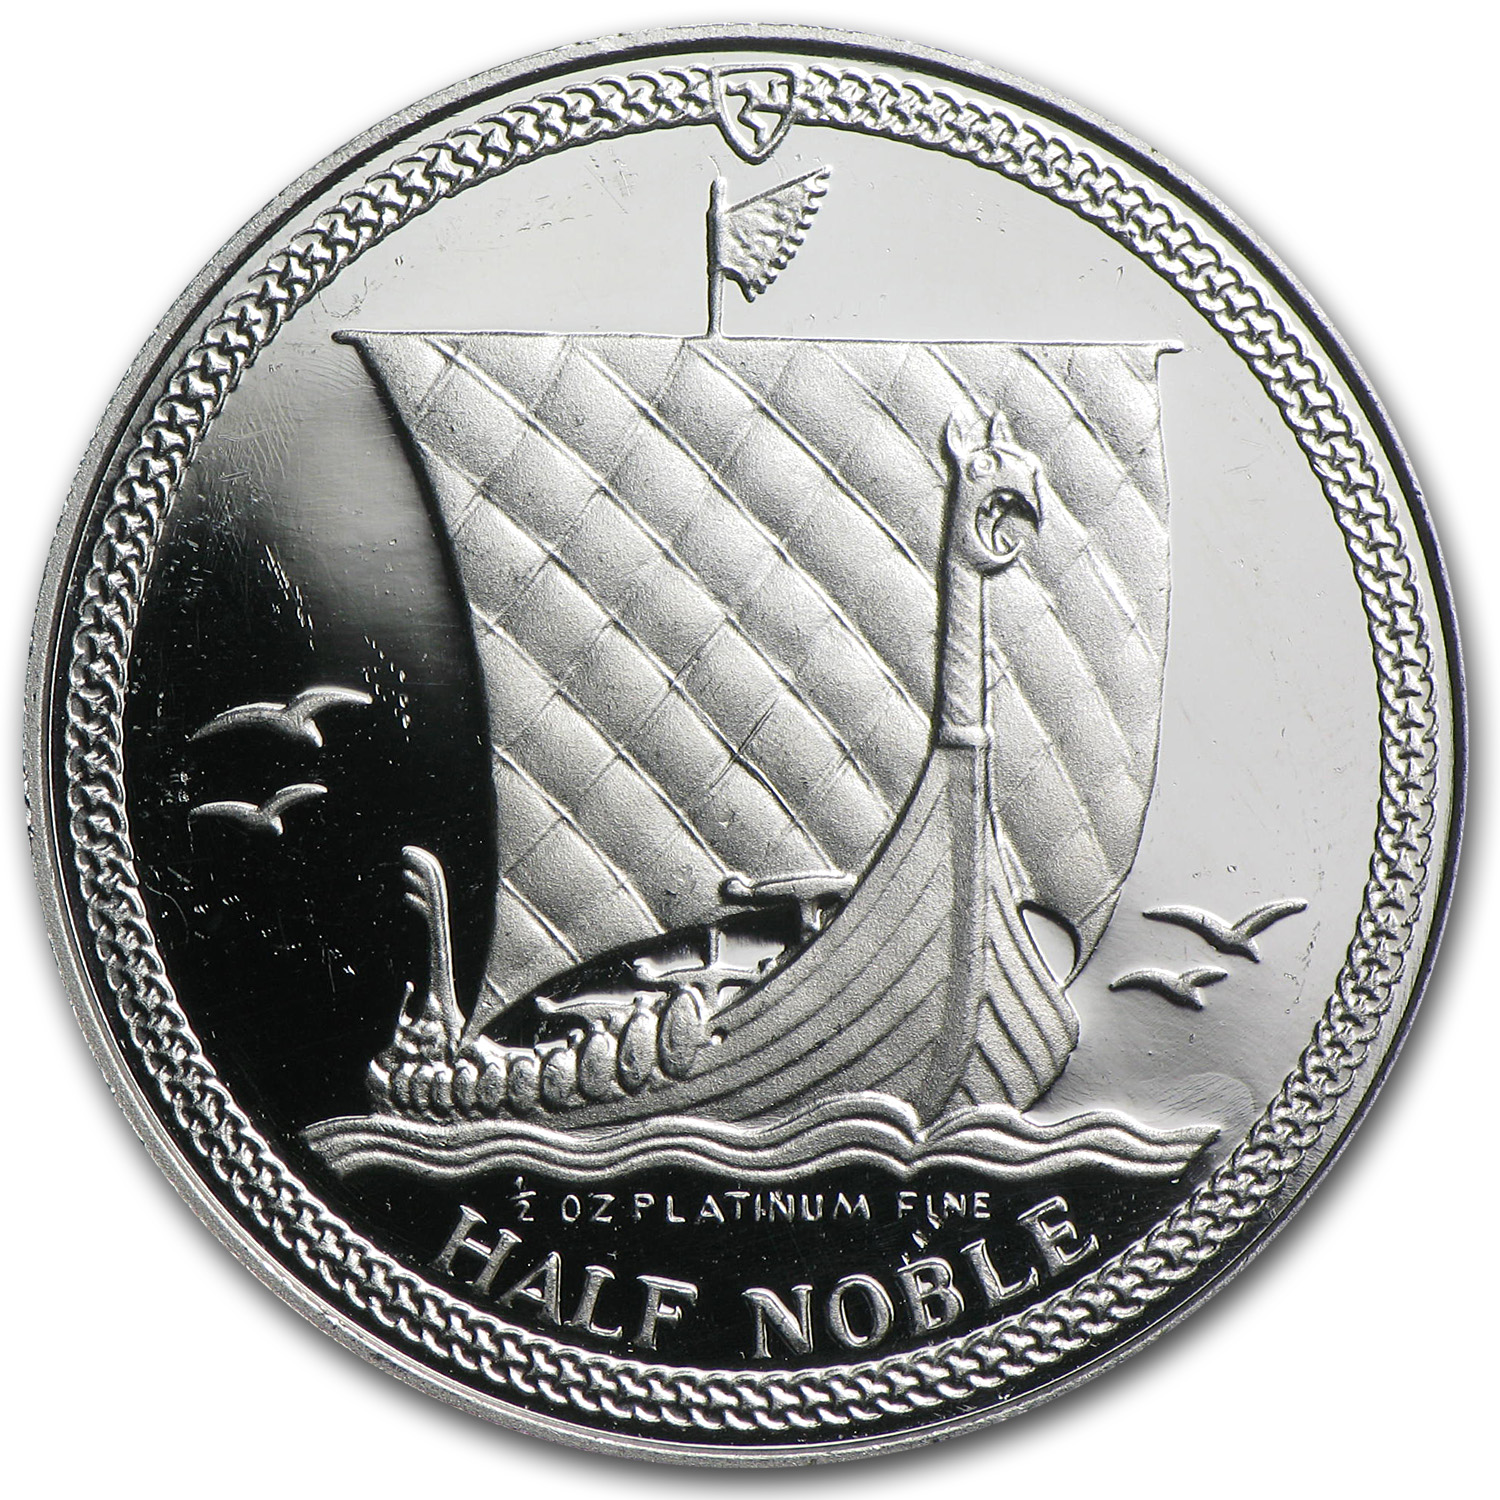 Isle Of Man 1 2 Oz Platinum Noble Proof Platinum Coins